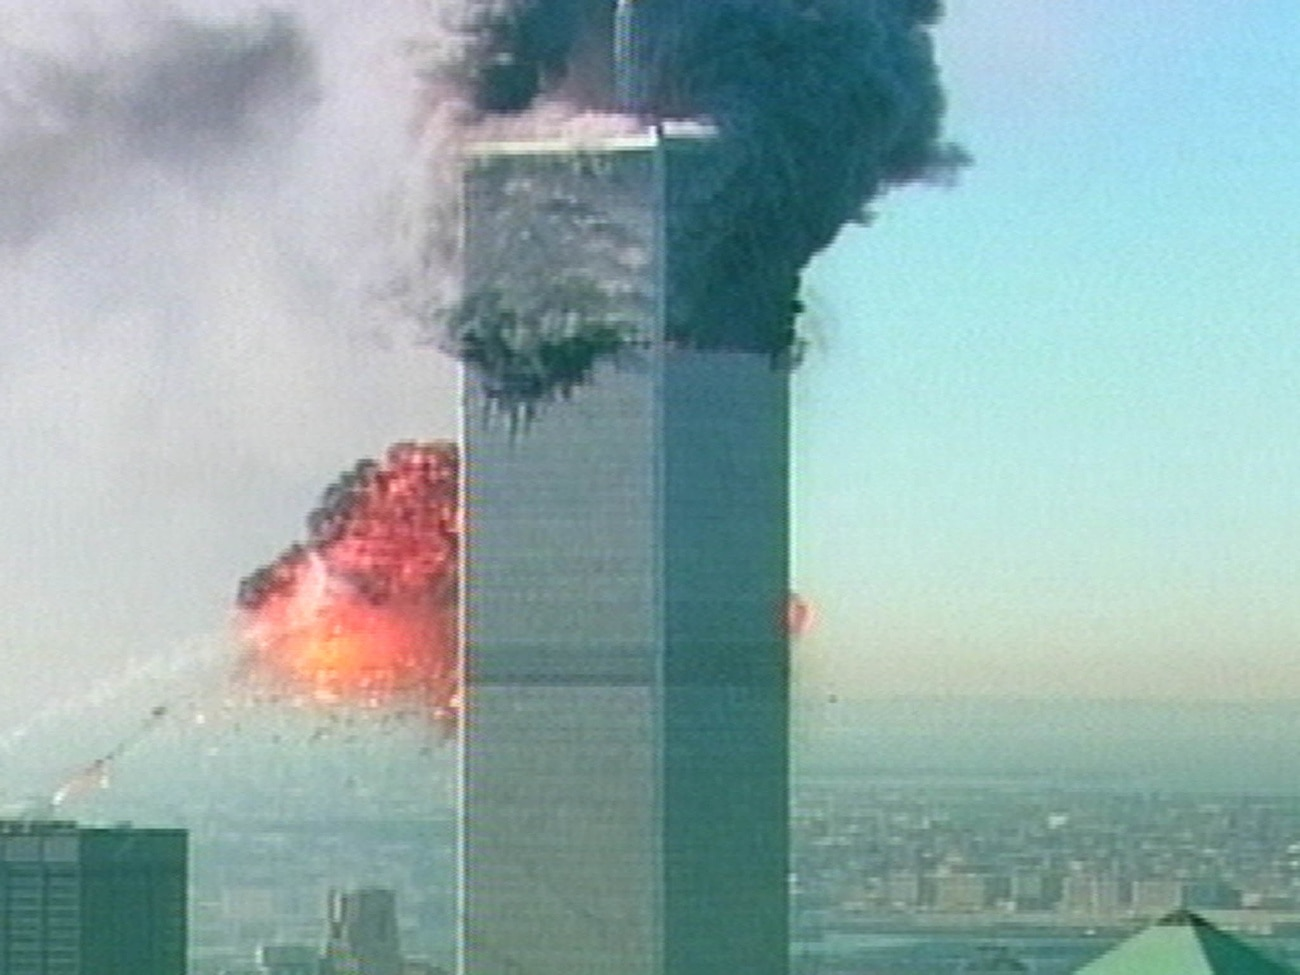 The Twin Towers were destroyed in the September 11, 2001 terrorist attacks